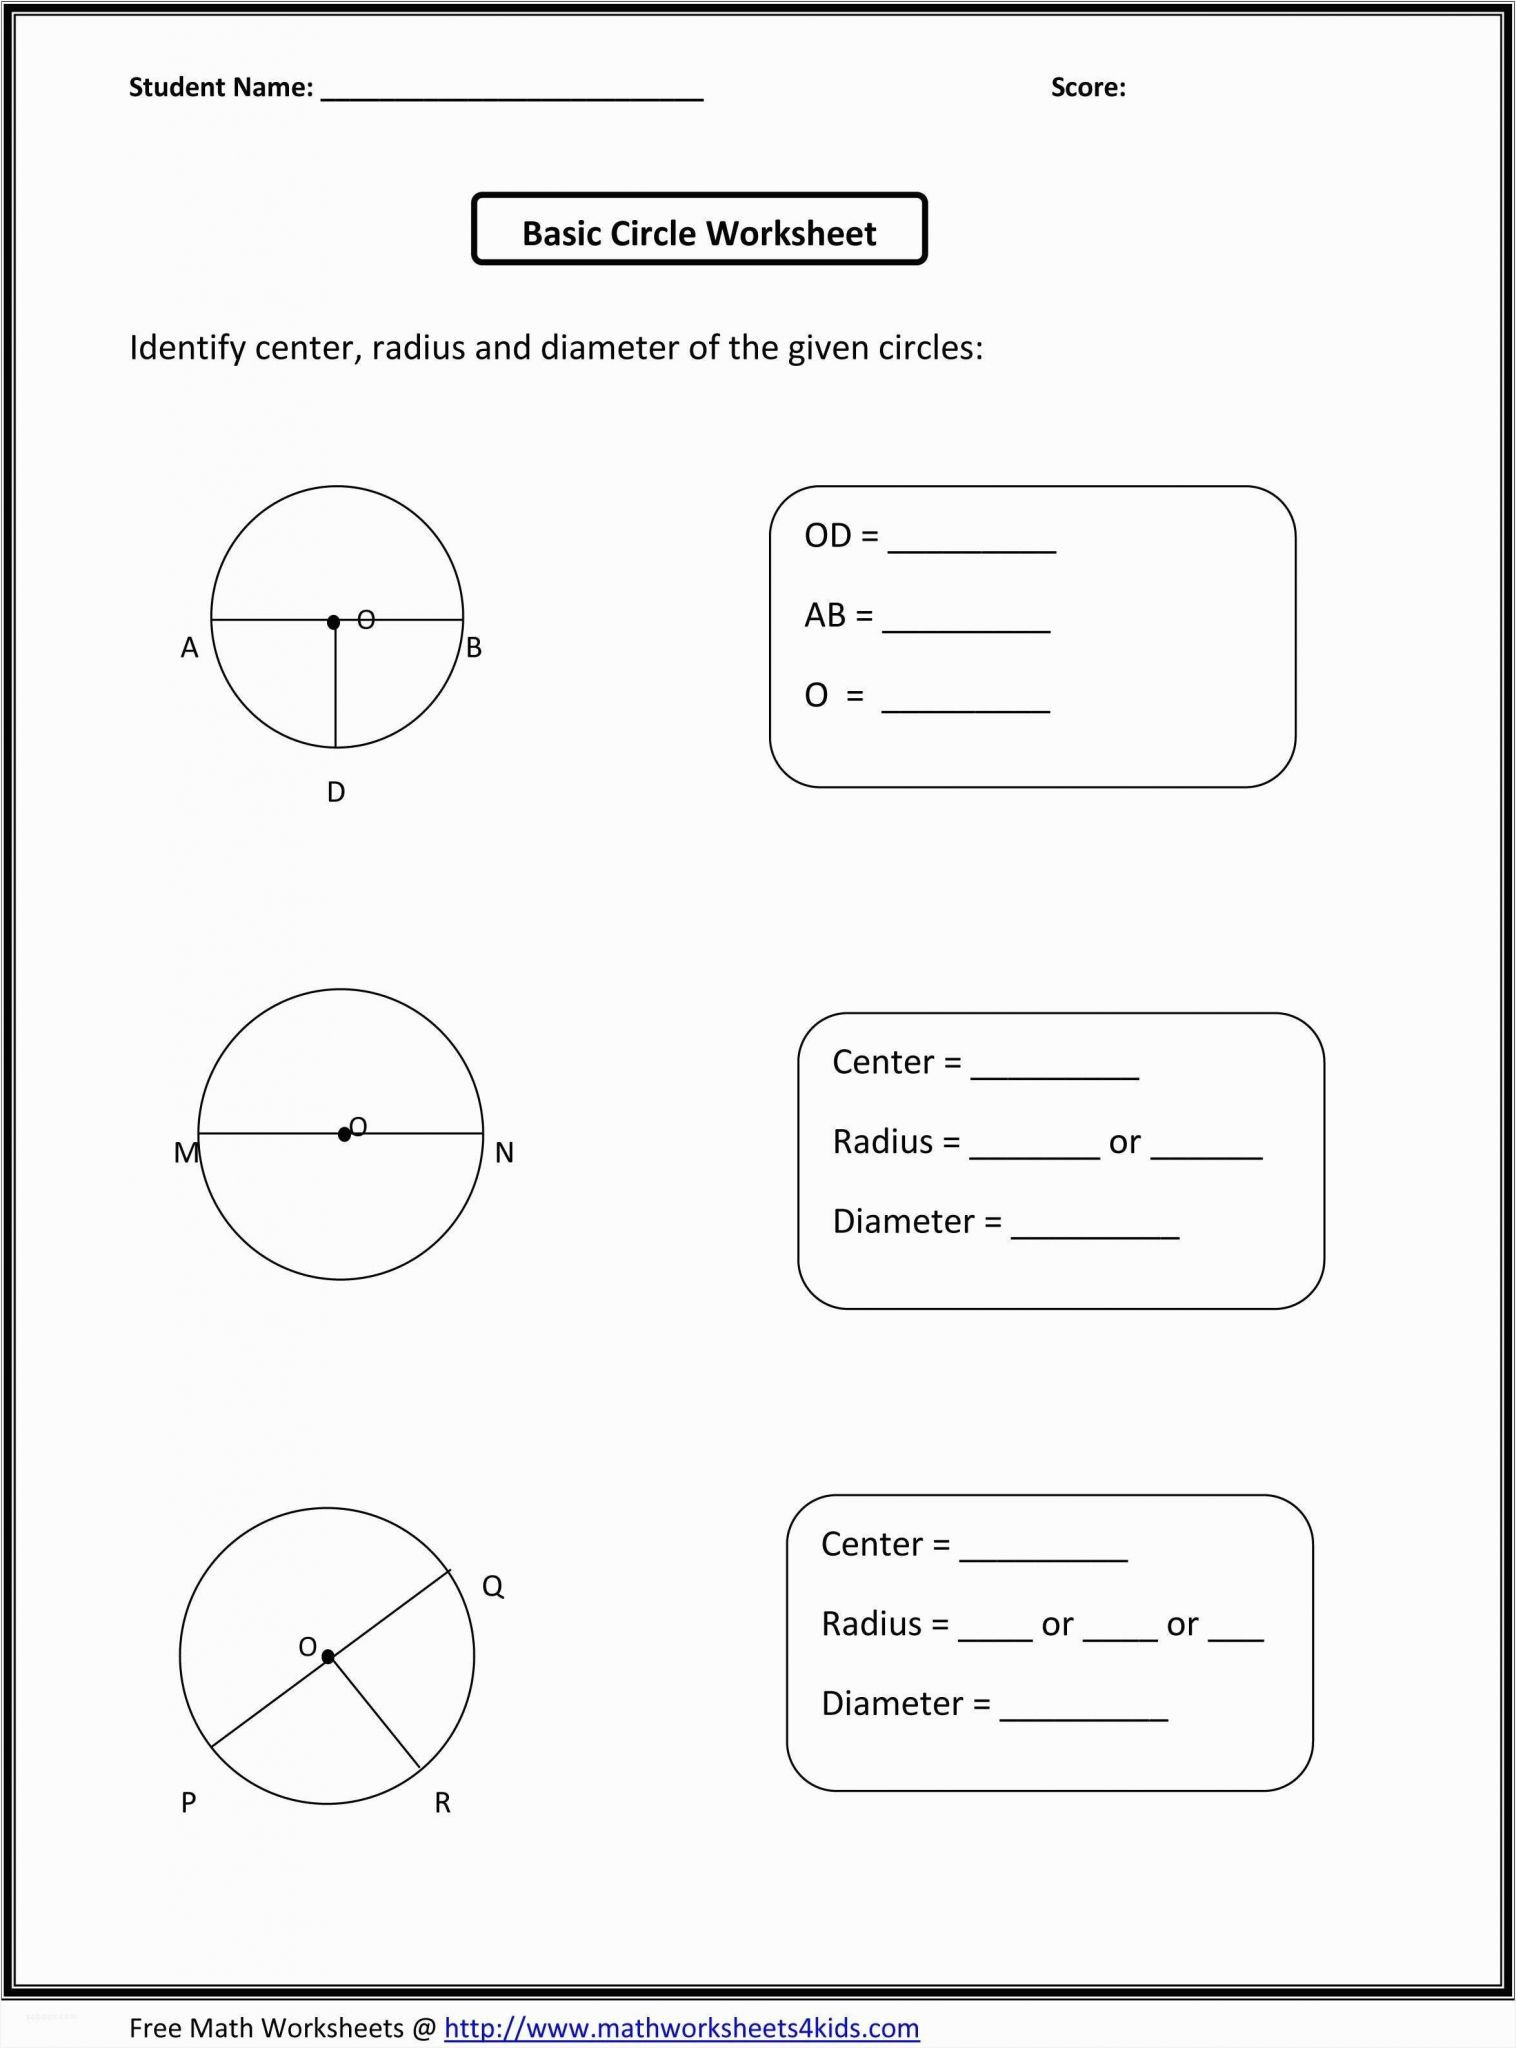 Functions and Relations Worksheet 33 Math Models Worksheet 41 Relations and Functions Free